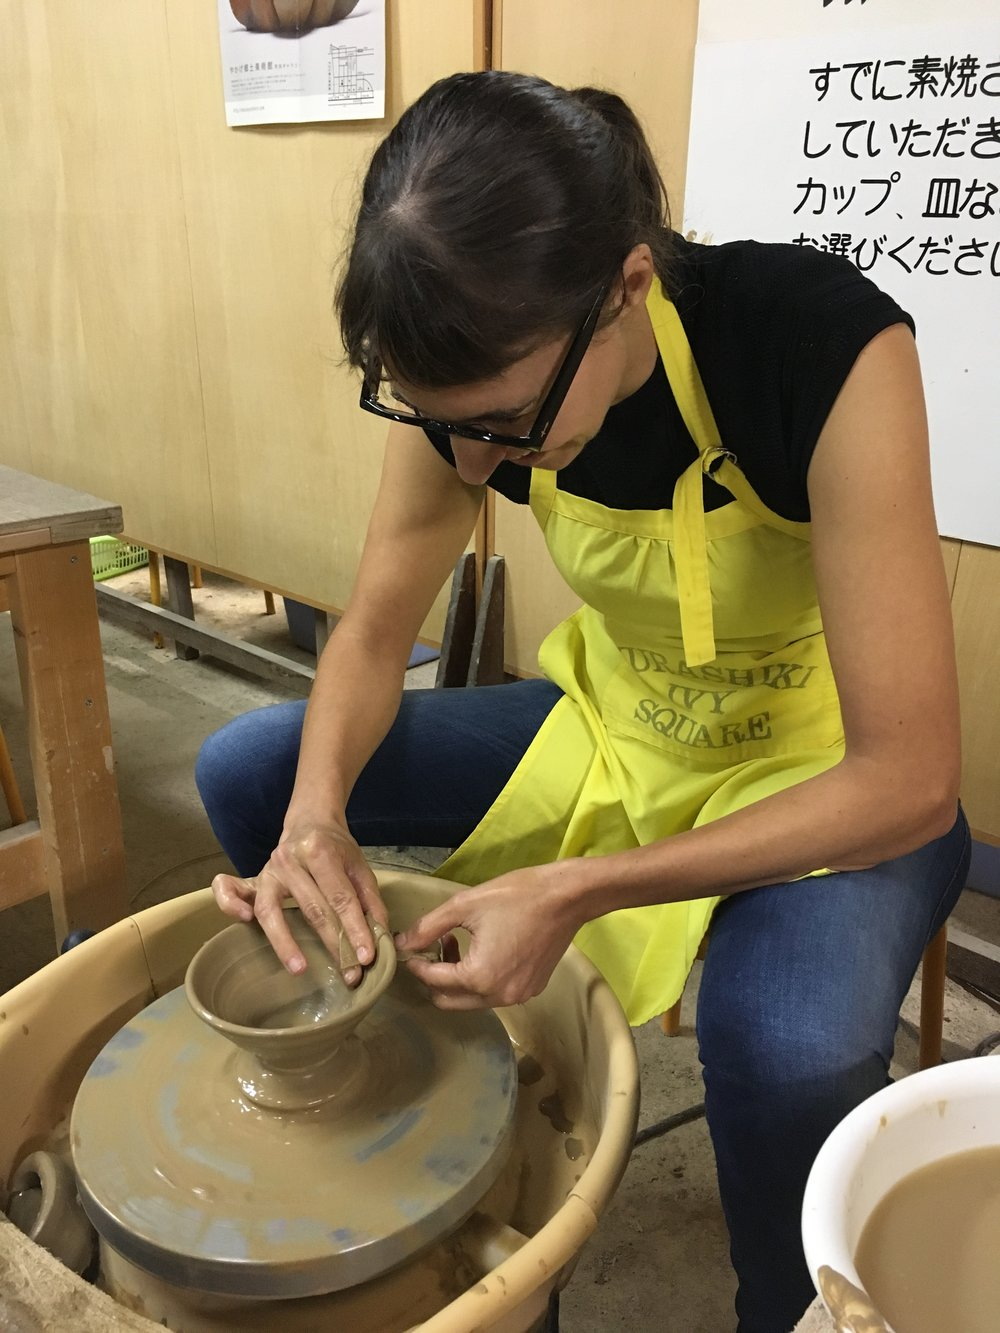 At work on the potter's wheel